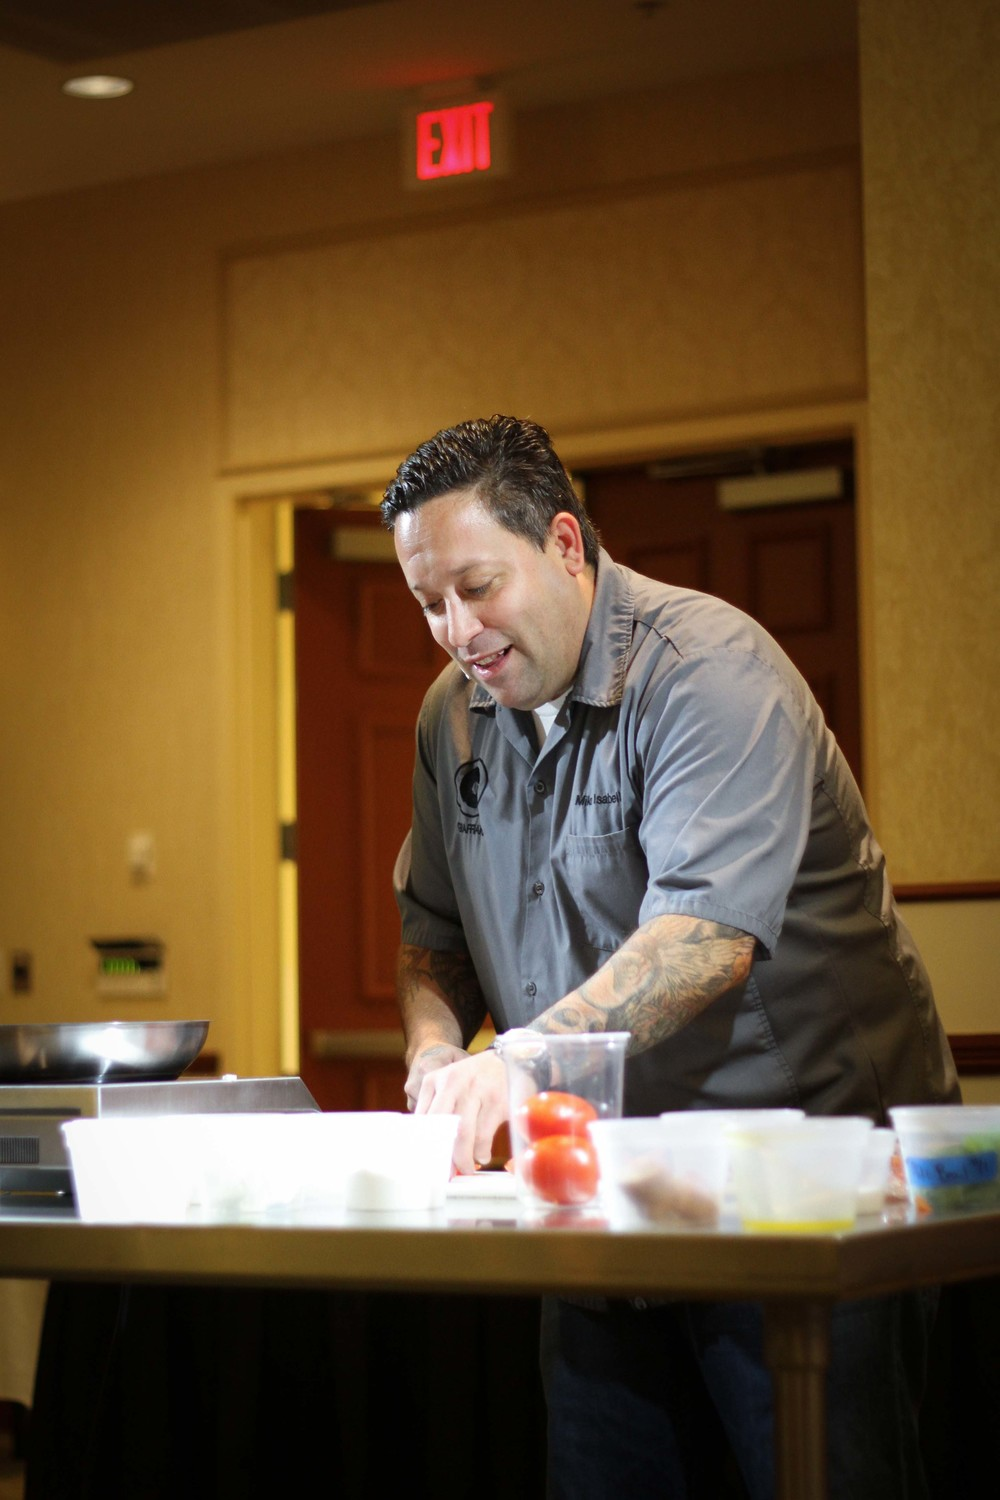 Chef Mike Isabella of Top Chef fame making gnudi